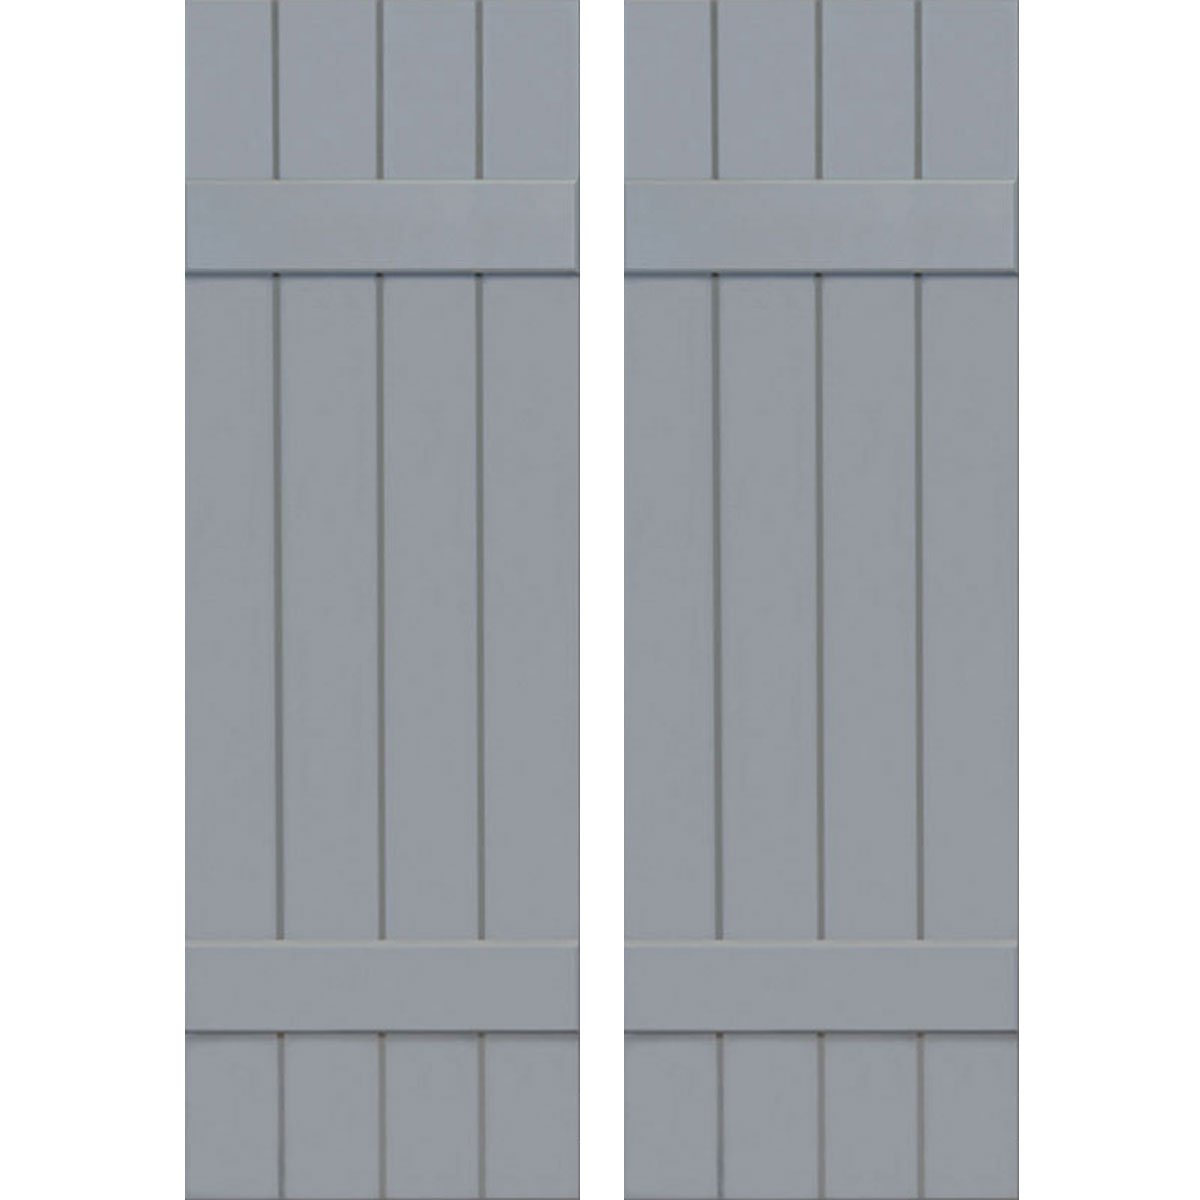 Ekena Millwork CWB15X063UNC Exterior Four Board Composite Wood Board-N-Batten Shutters with Installation Brackets (Per Pair), Unfinished, 15''W x 63''H by Ekena Millwork